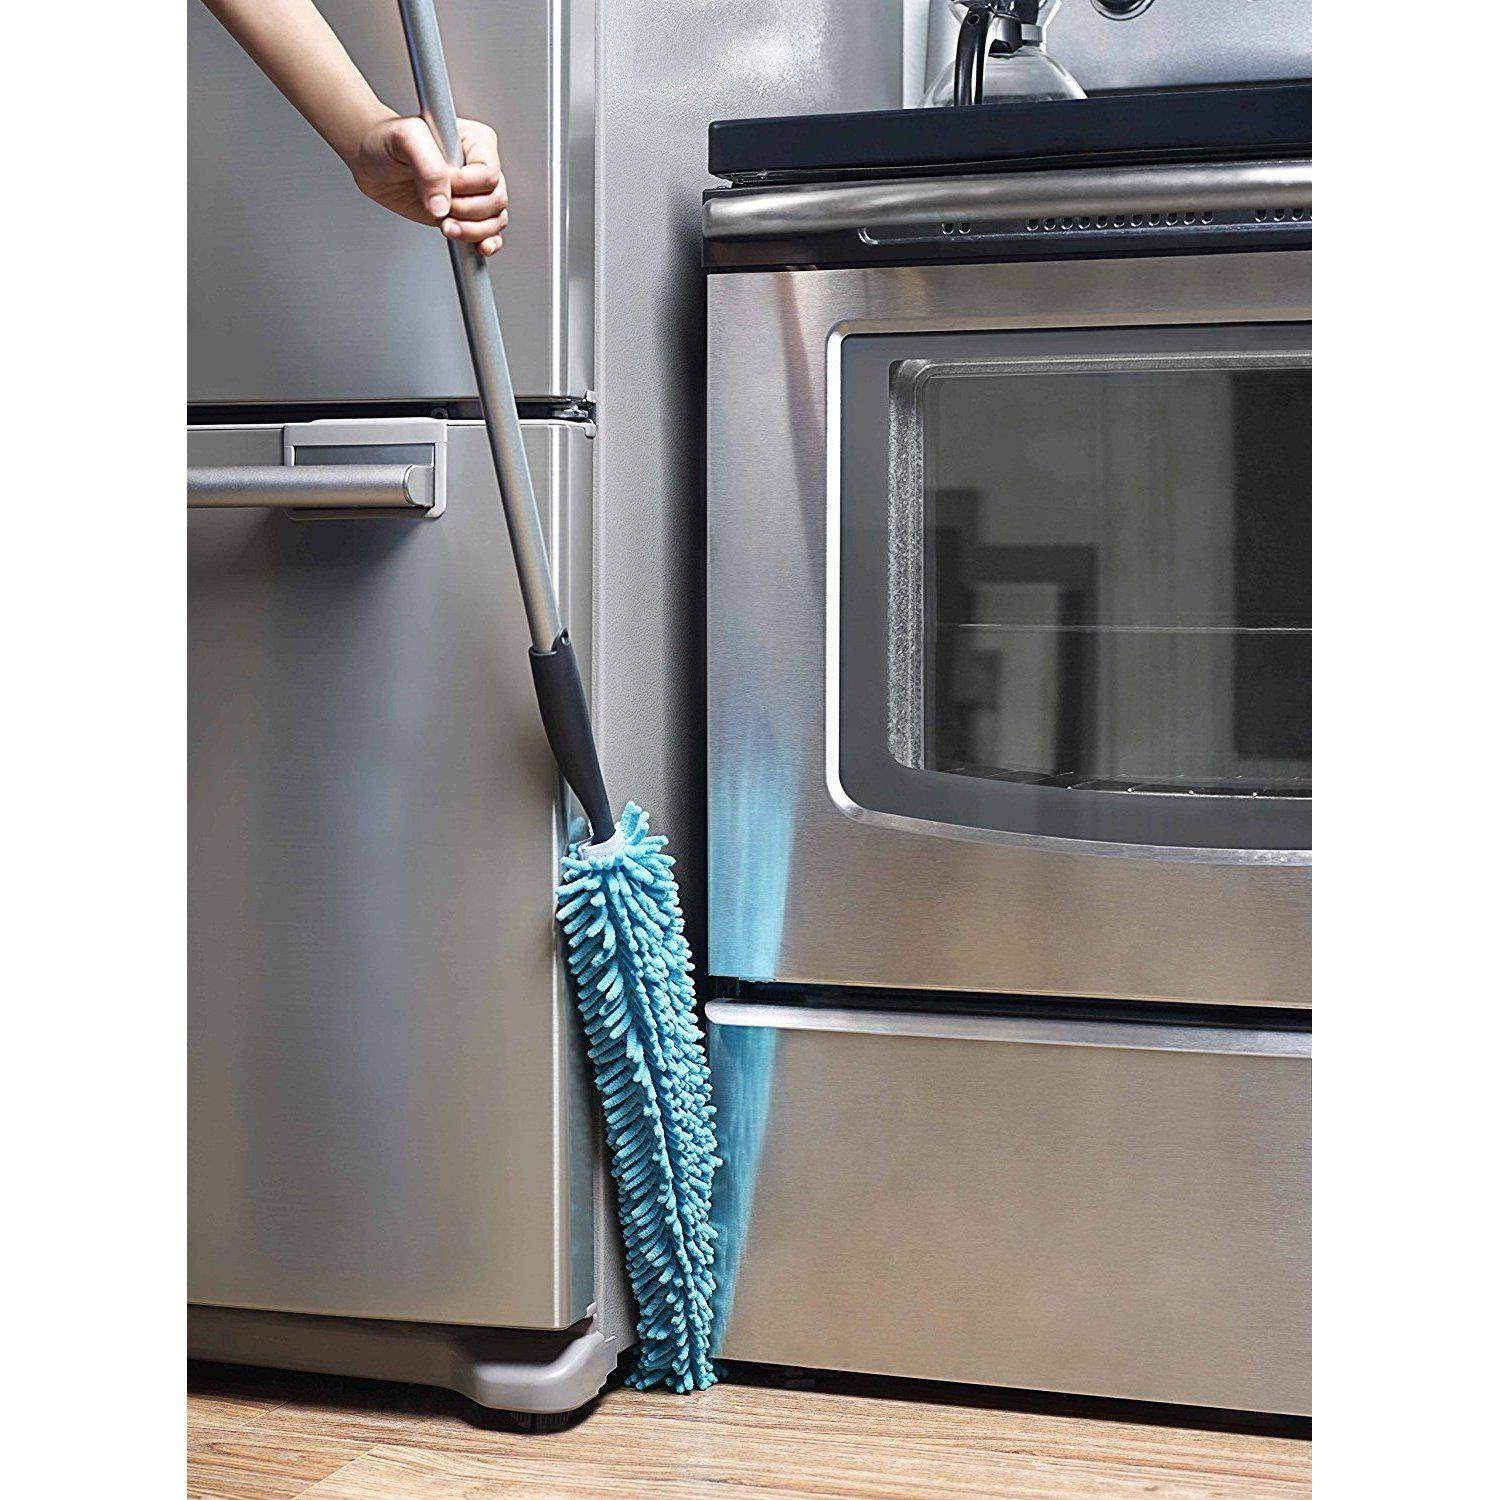 Bendable Microfiber Duster With Microfiber Fingers and Handle-Duster-Fuller Brush Company